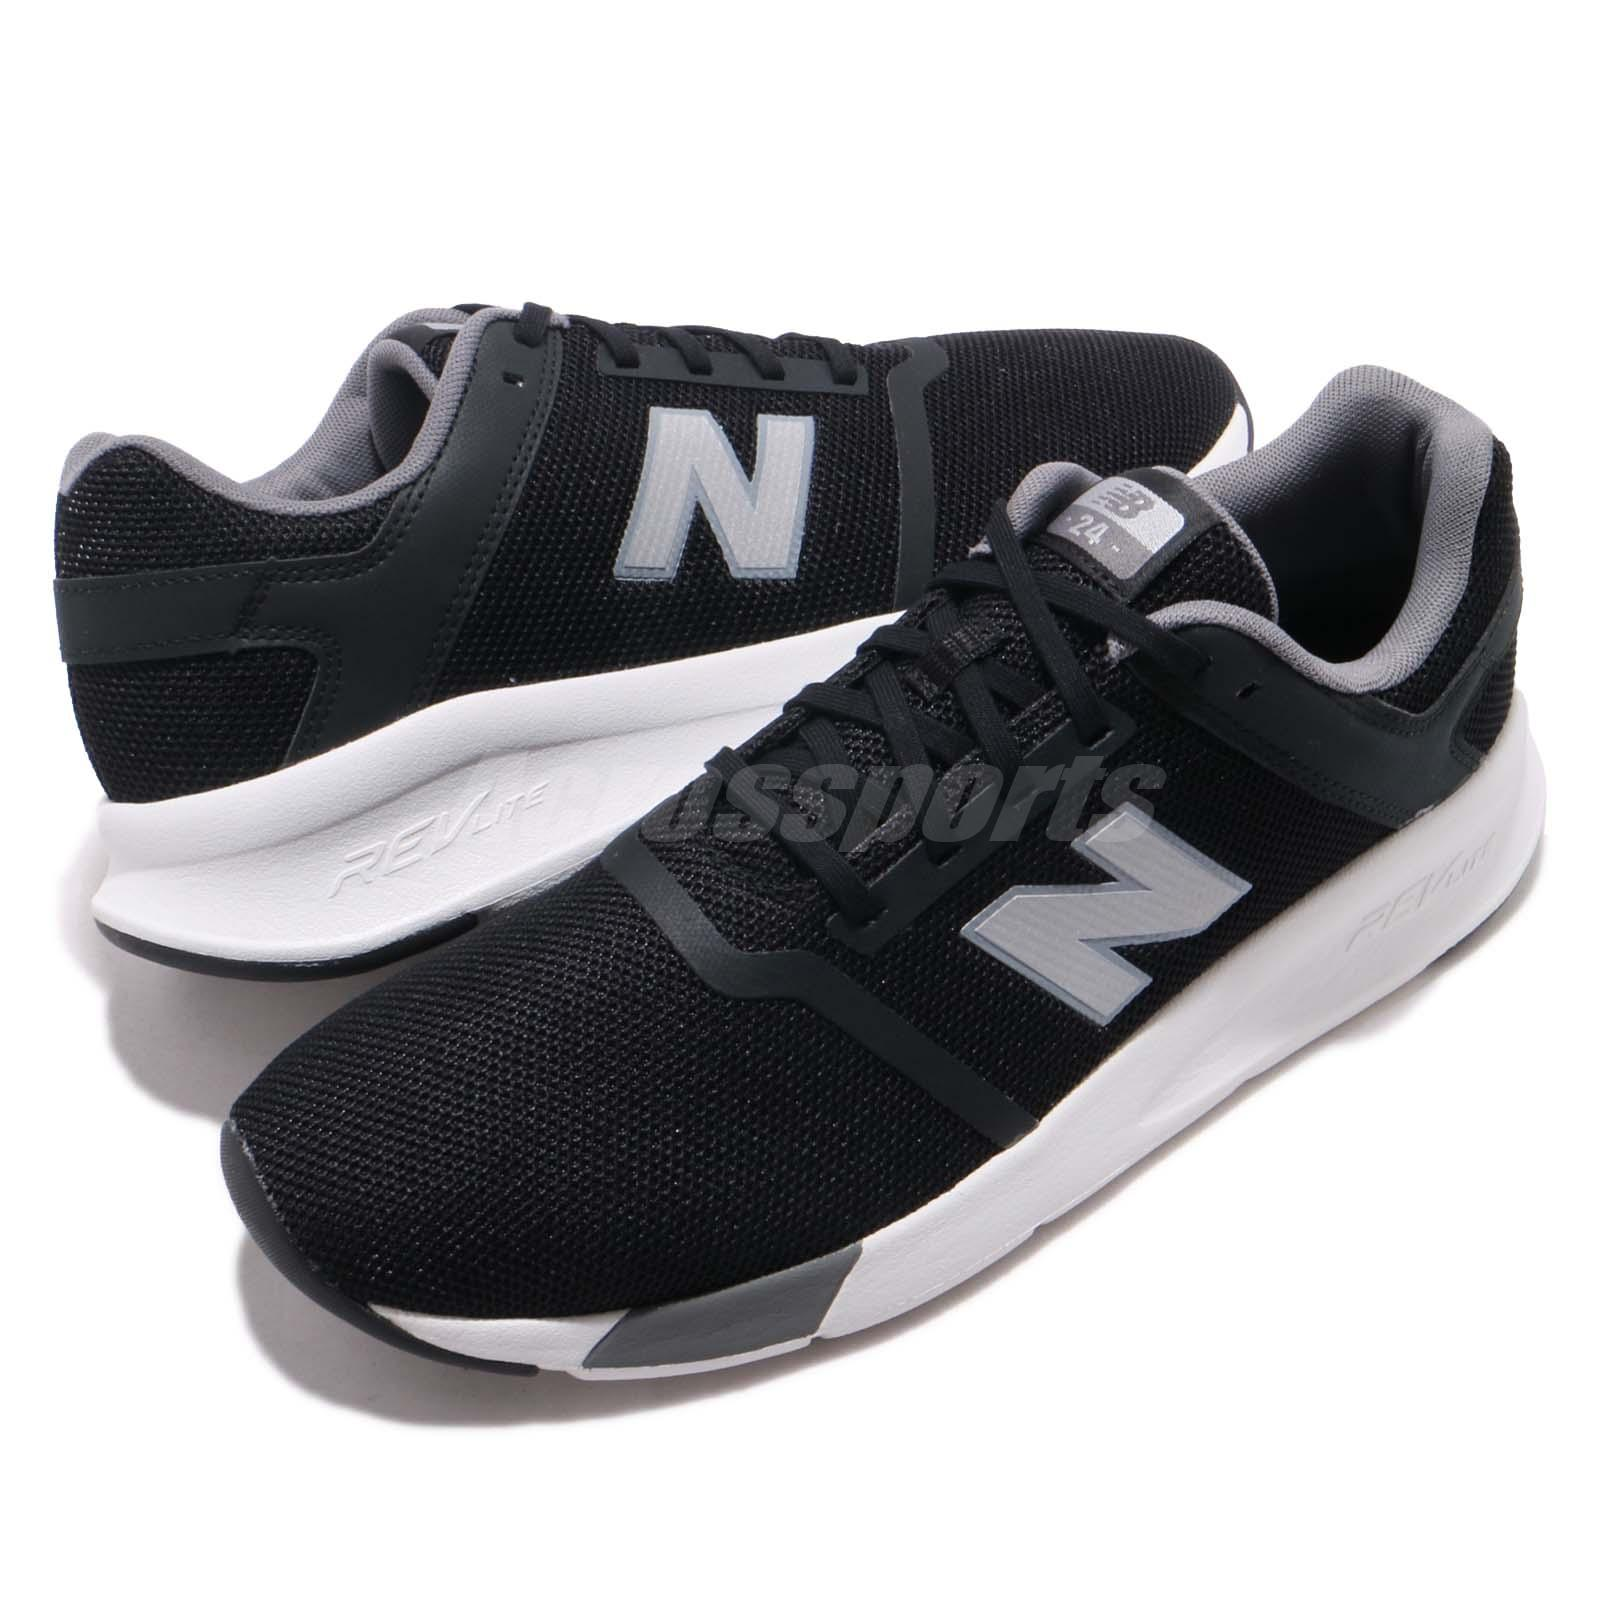 NEW Mens New Balance 1540v2 Black Grey Lace Up Athletic Running Shoes AUTHENTIC